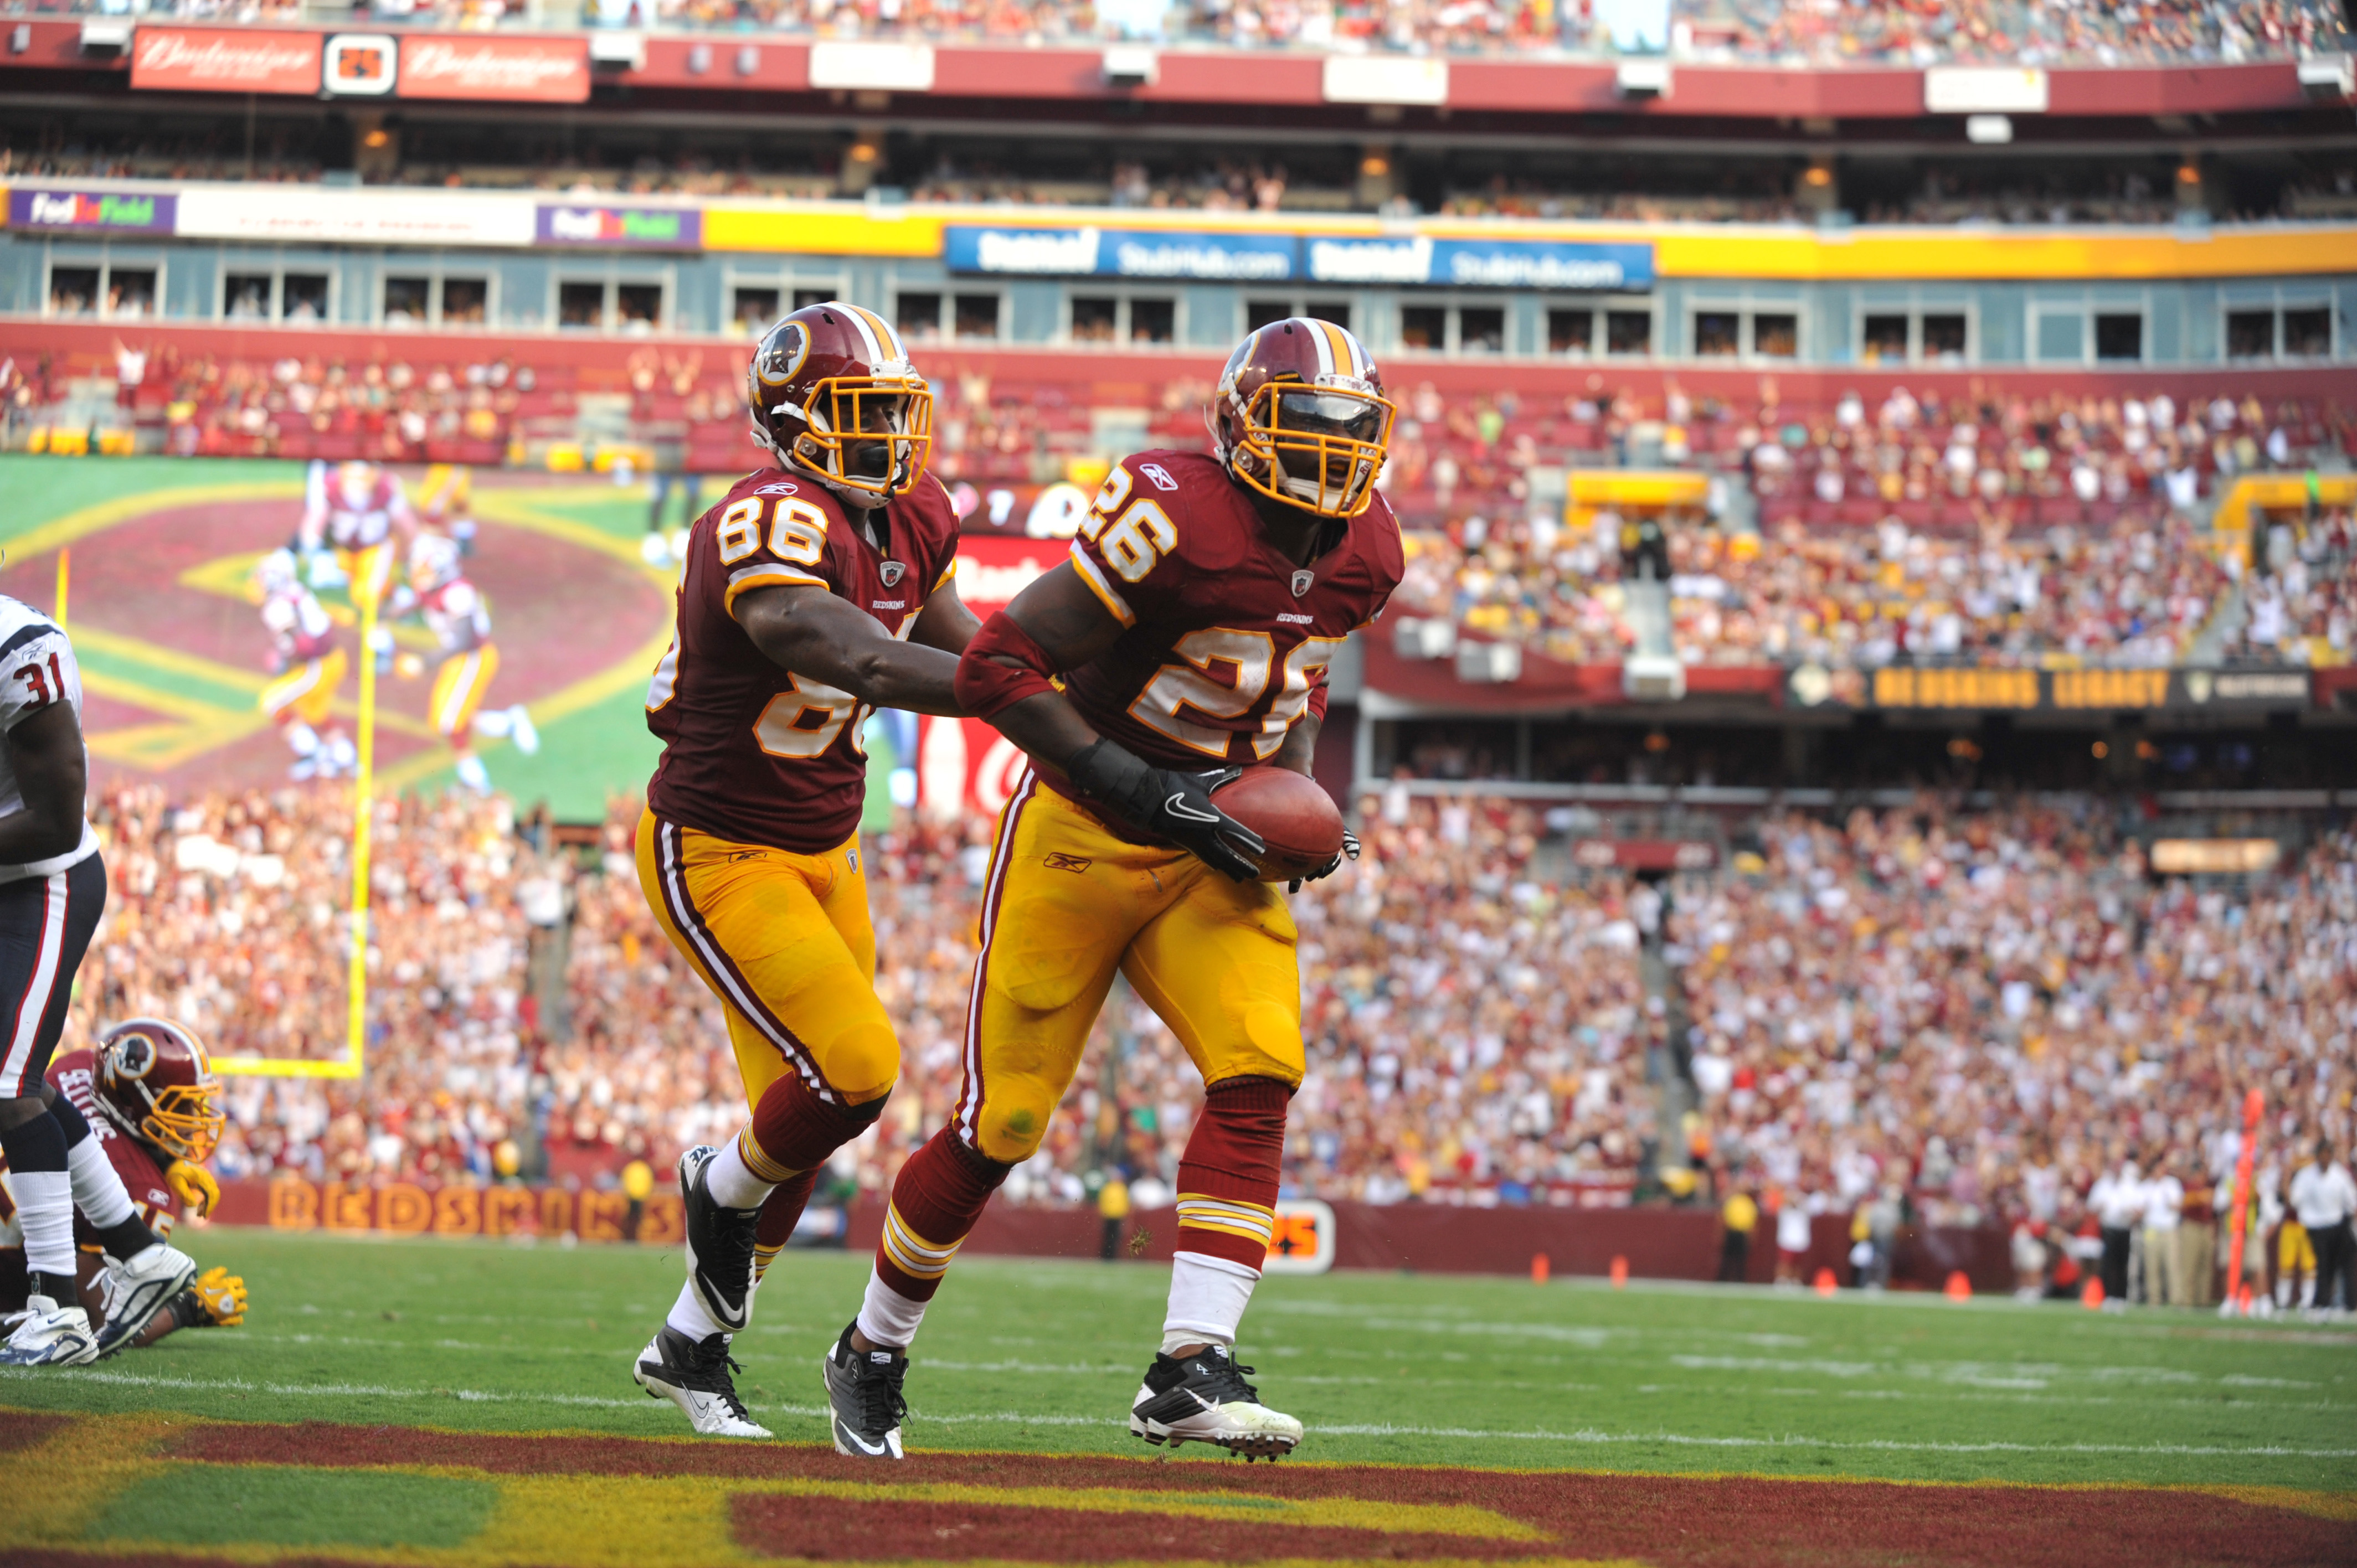 LANDOVER, MD - SEPTEMBER 19:  Clinton Portis #26 of the Washington Redskins celebrates a touchdown against the Houston Texans at FedExField on September 19, 2010 in Landover, Maryland. The Redskins lead the Texans at the half 20-7. (Photo by Larry French/